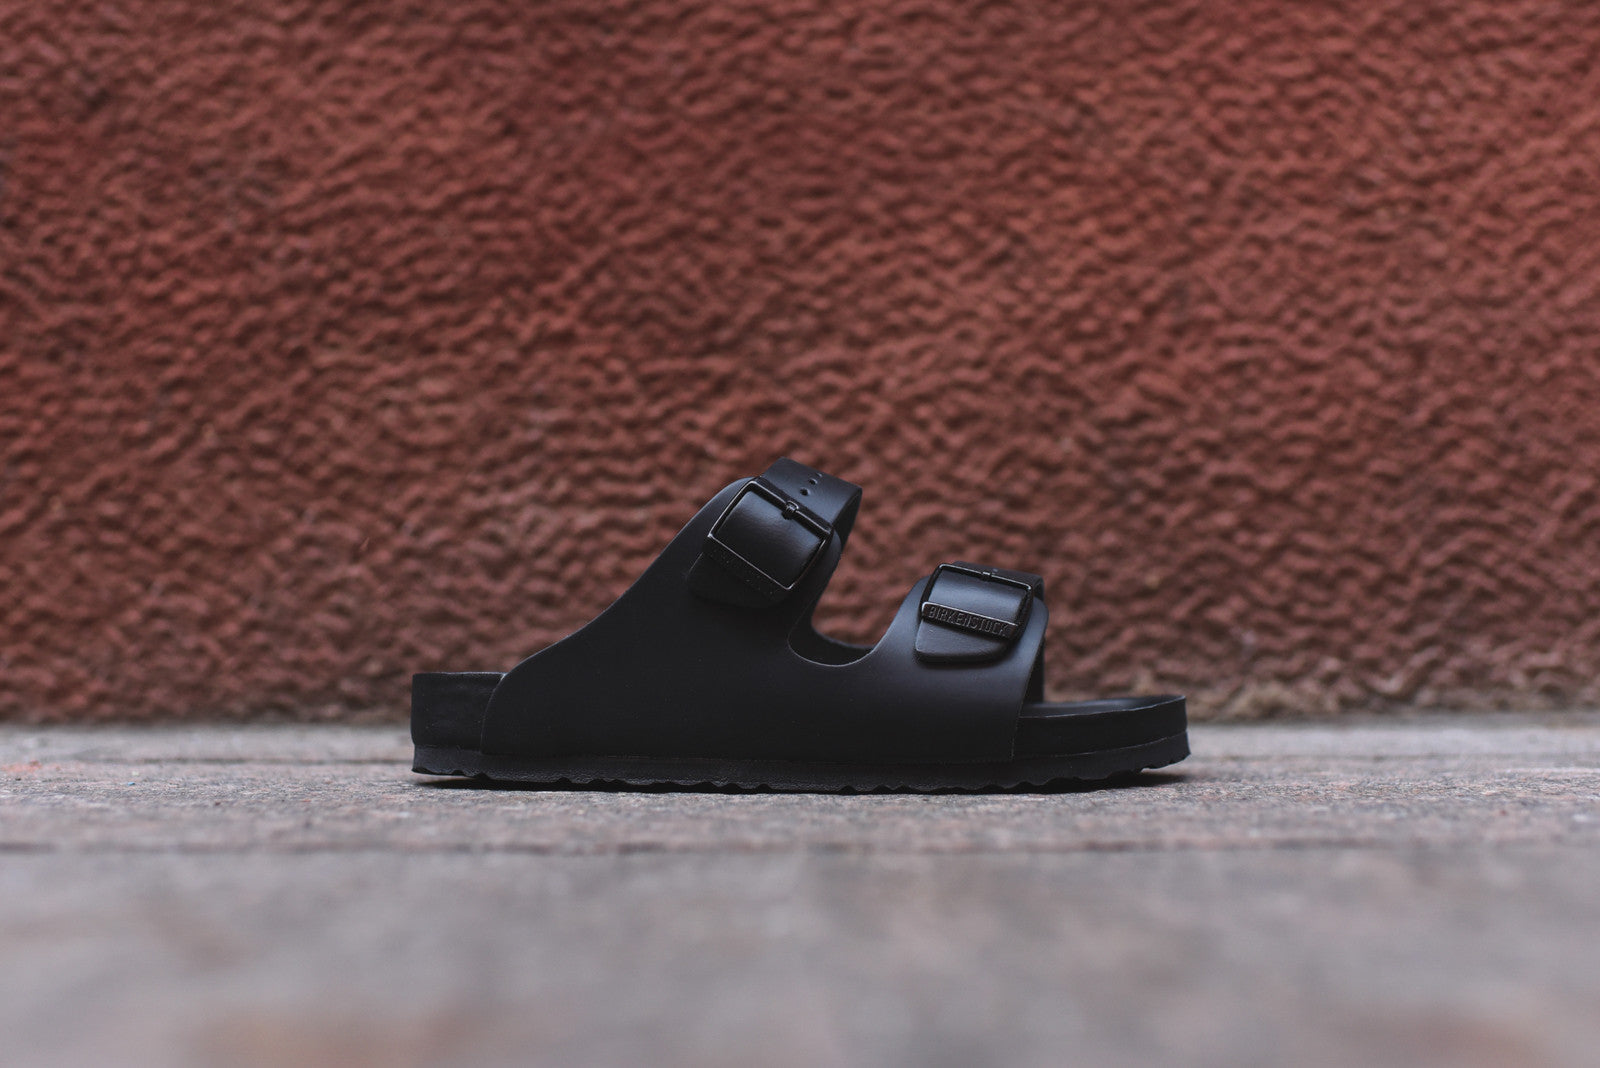 Birkenstock Monterey Exquisite Premium - Black Leather